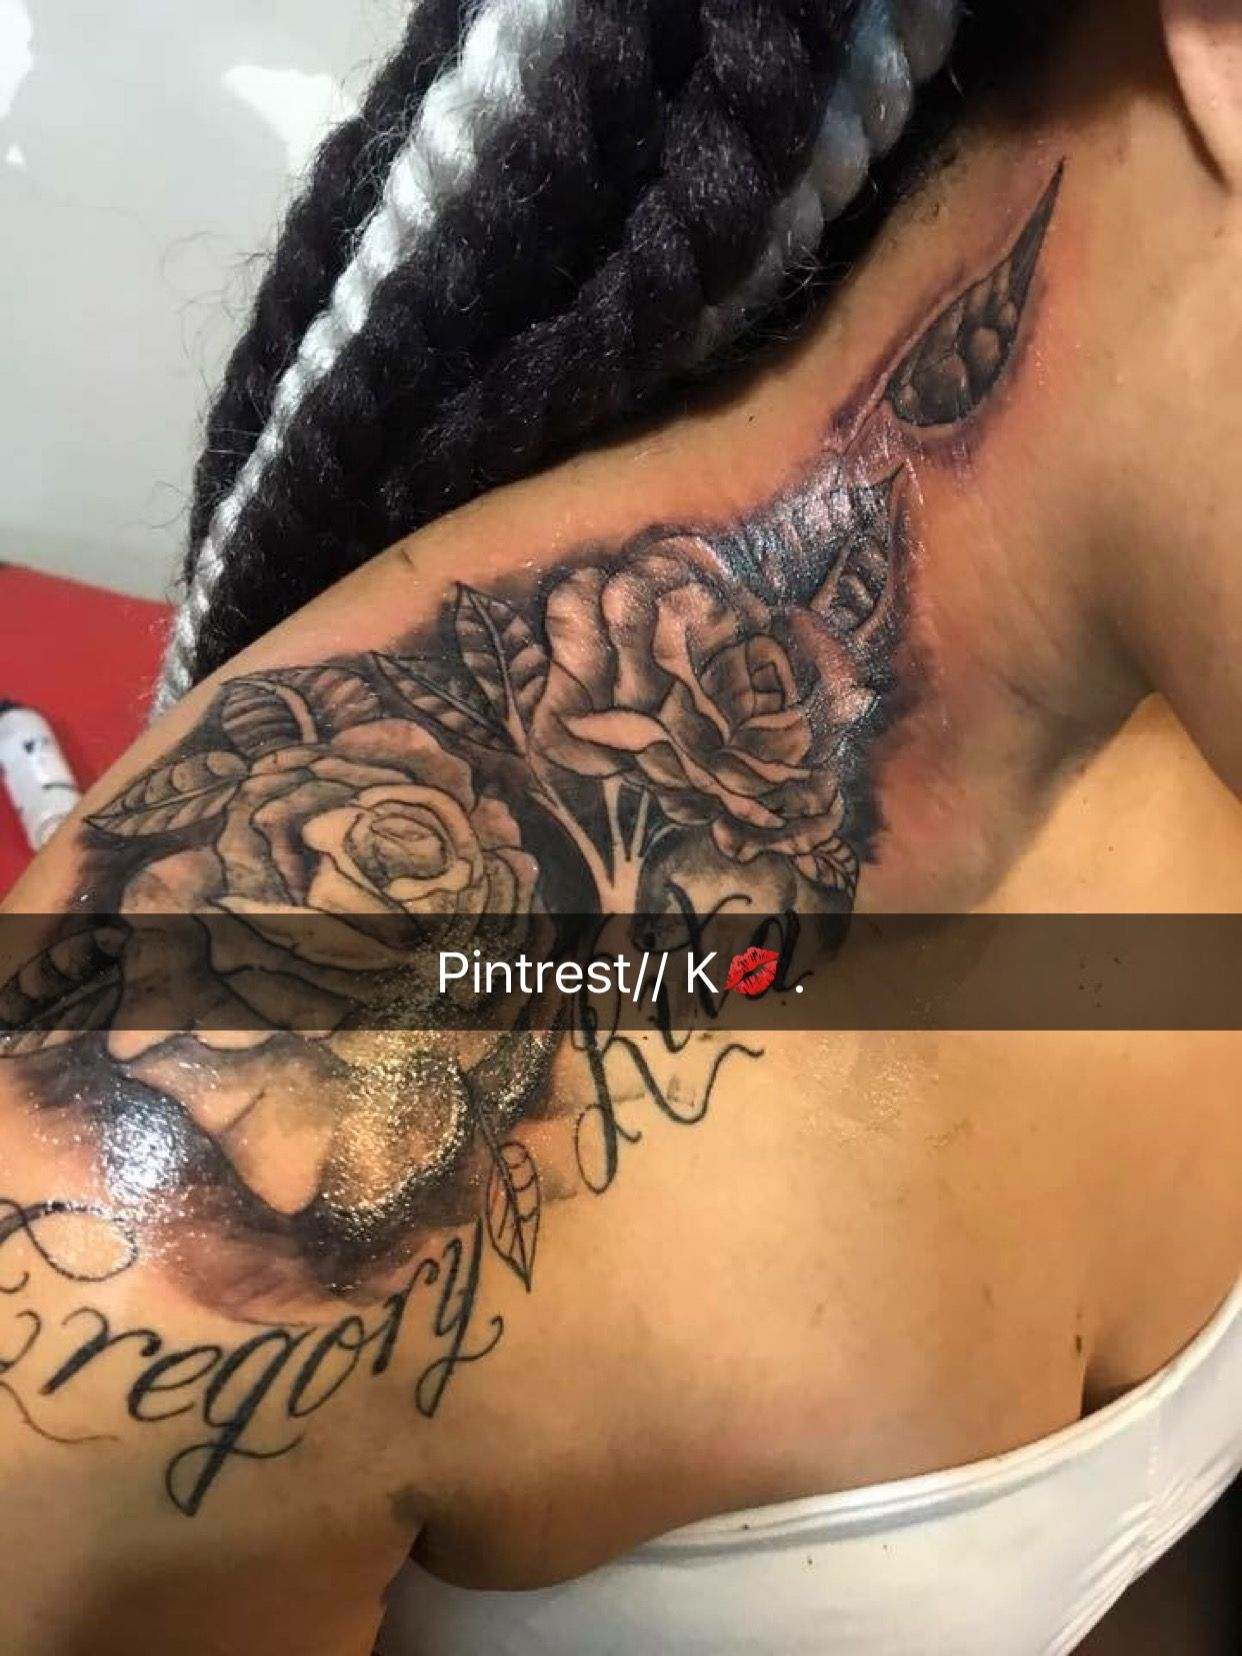 Pin by Riley Flyte on tattoo ideas Black girls with